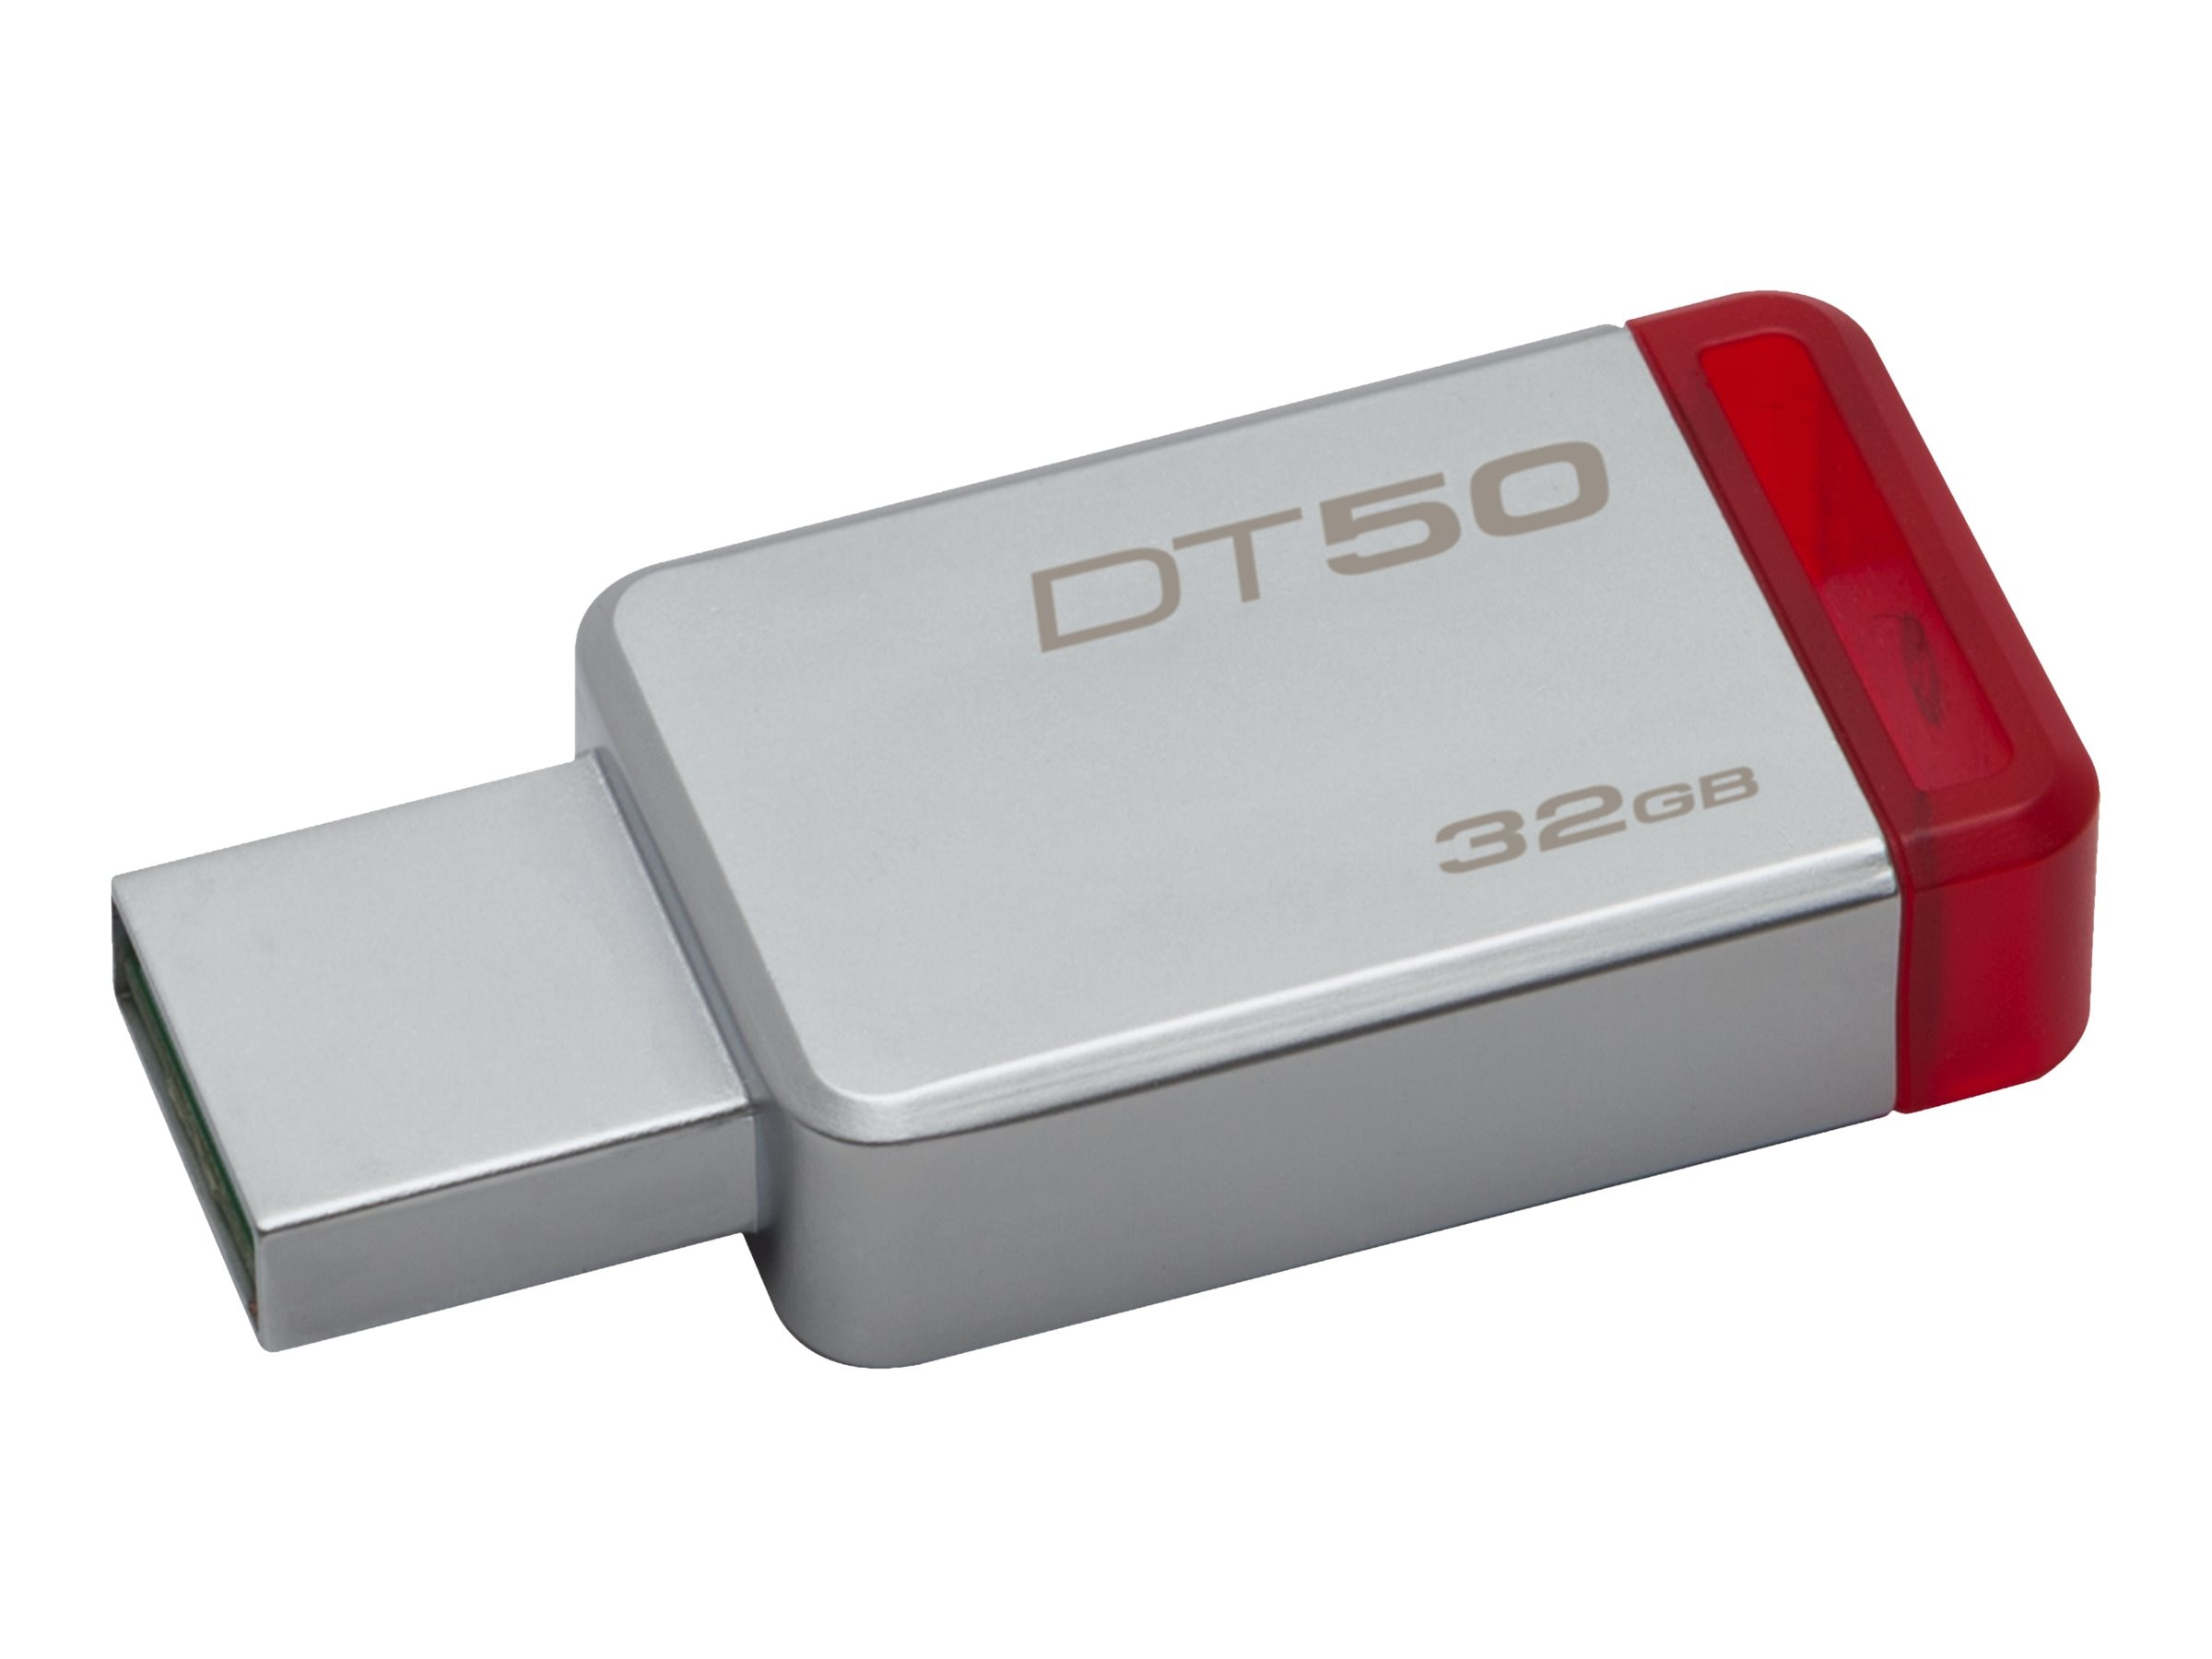 Kingston 32GB DataTraveler 50 USB 3.0 Flash Drive, Red